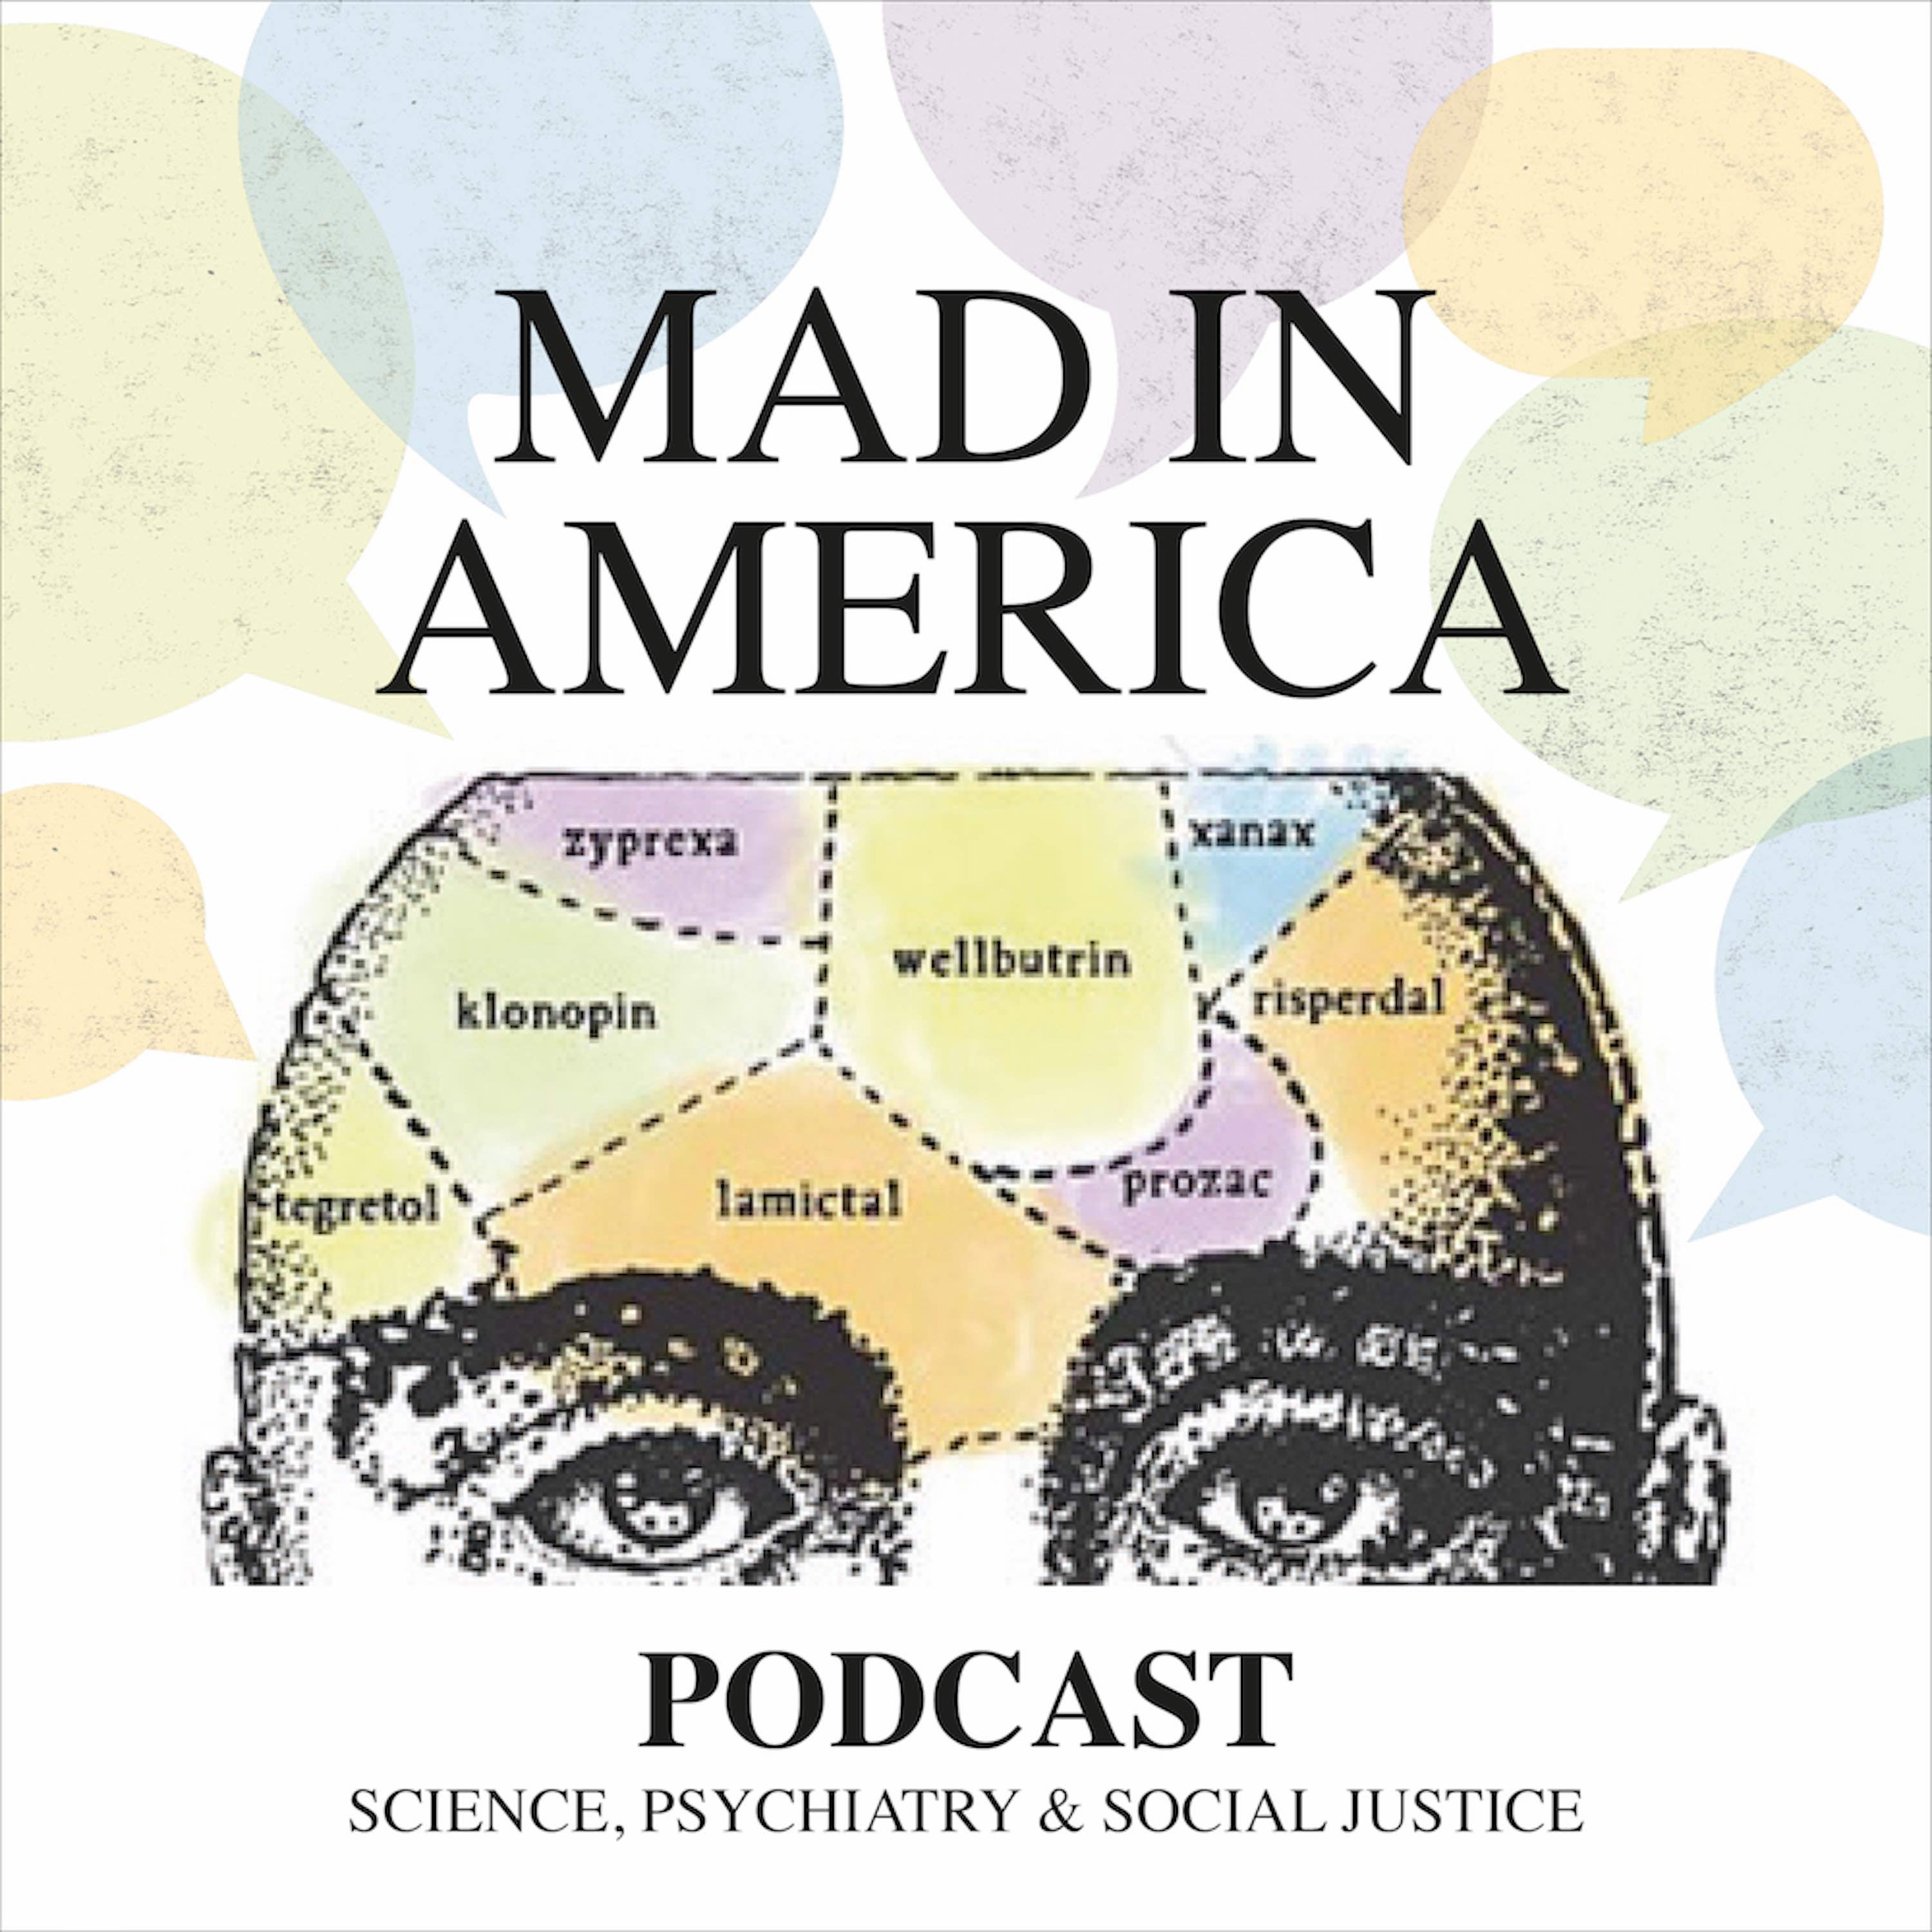 Mad in America: Rethinking Mental Health - John Read and Sue Cunliffe - The 57th Maudsley Debate - This House Believes that ECT has no Place in Modern Medicine